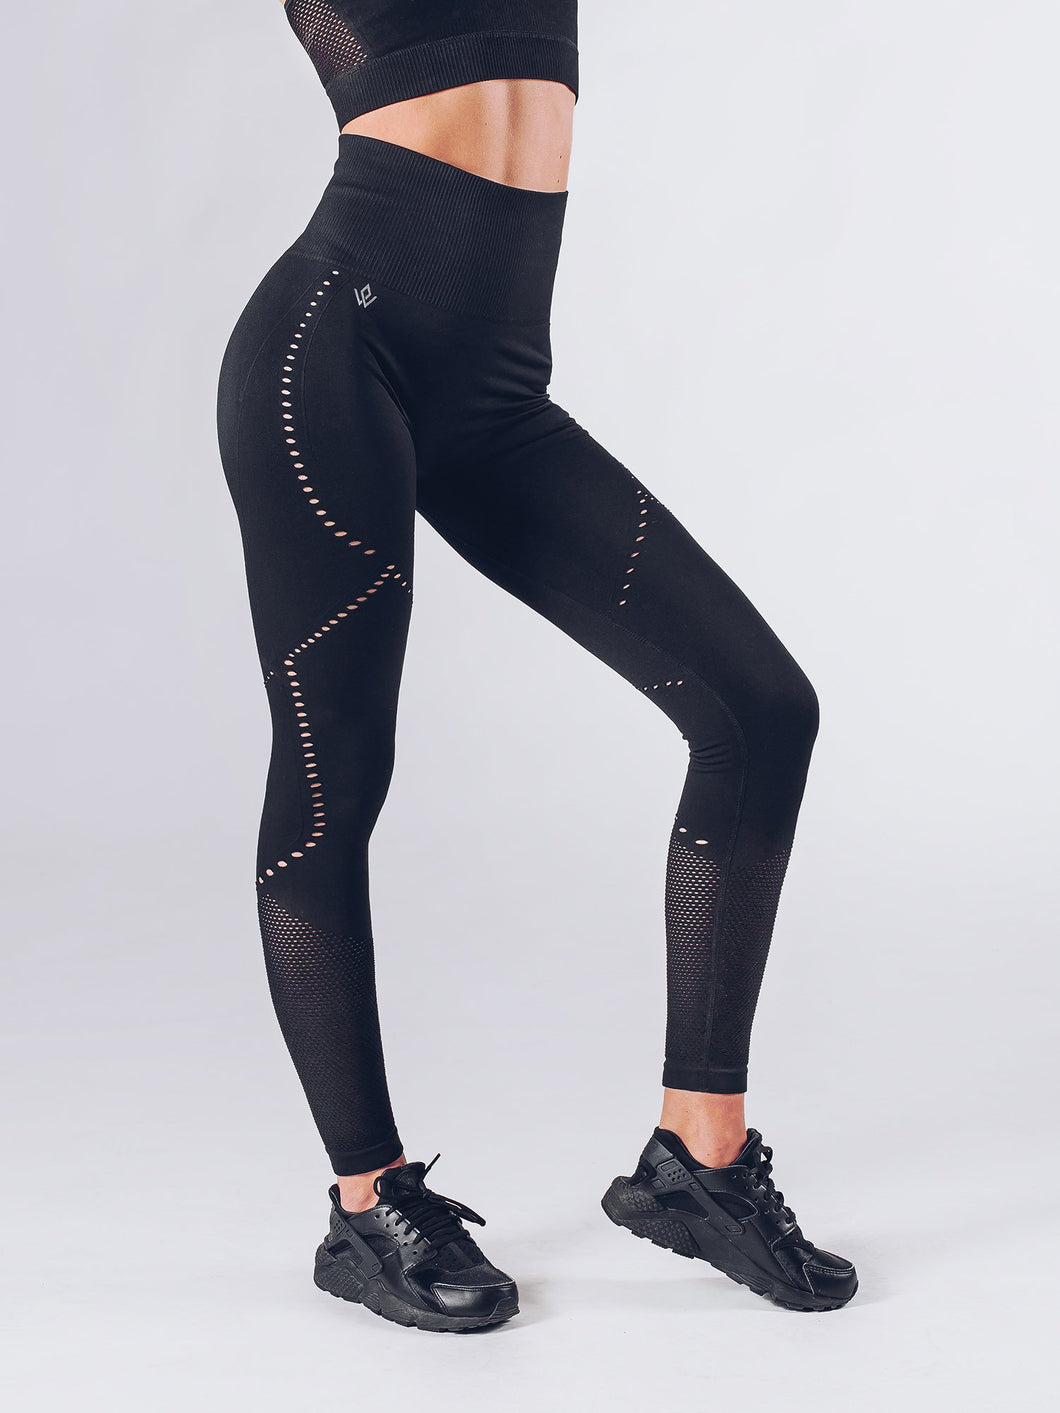 Workout Empire - Sculpt Leggings - Obsidian - Seitlich 1